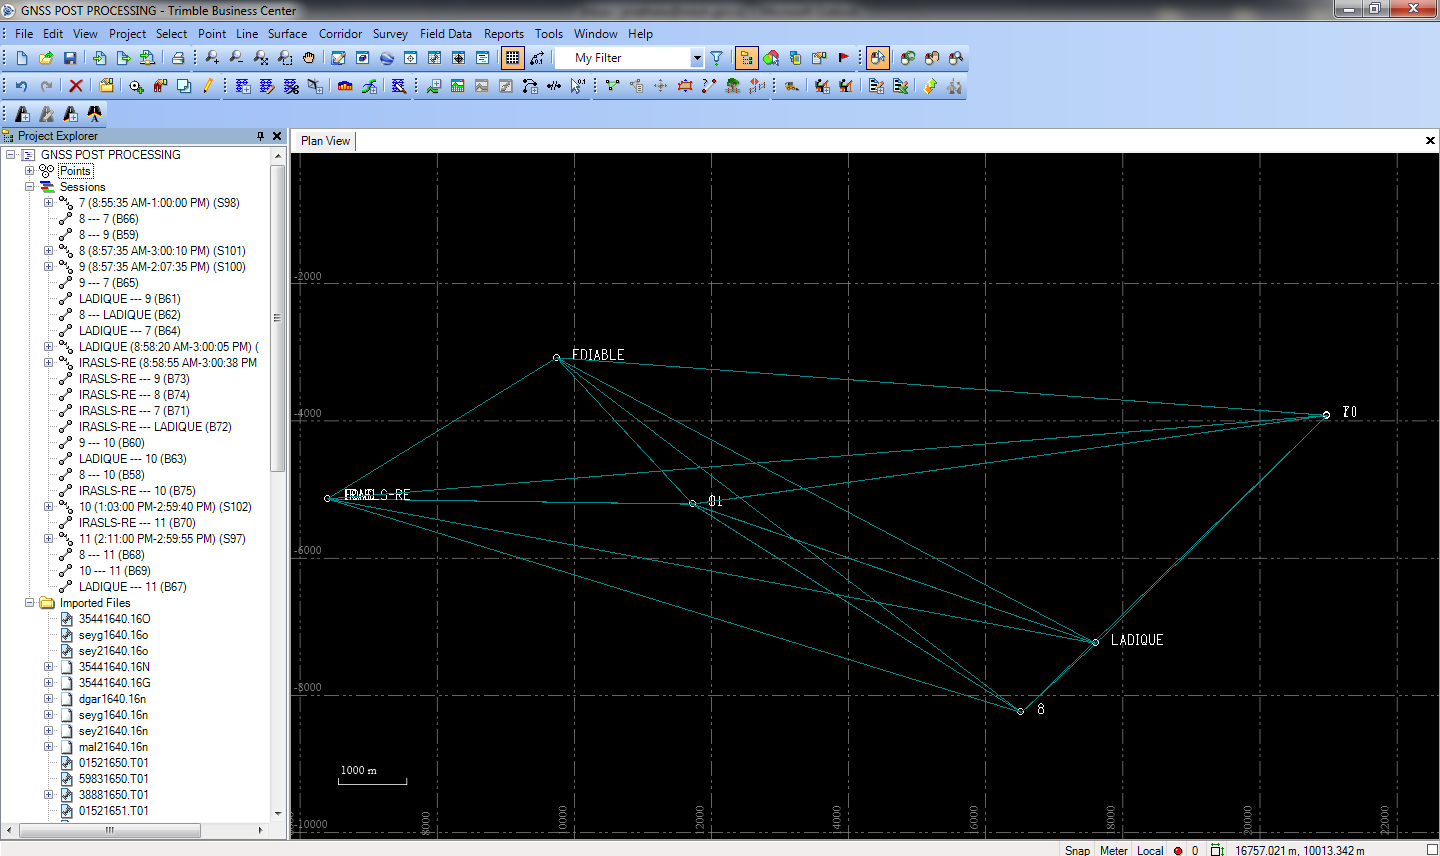 GNSS Processing